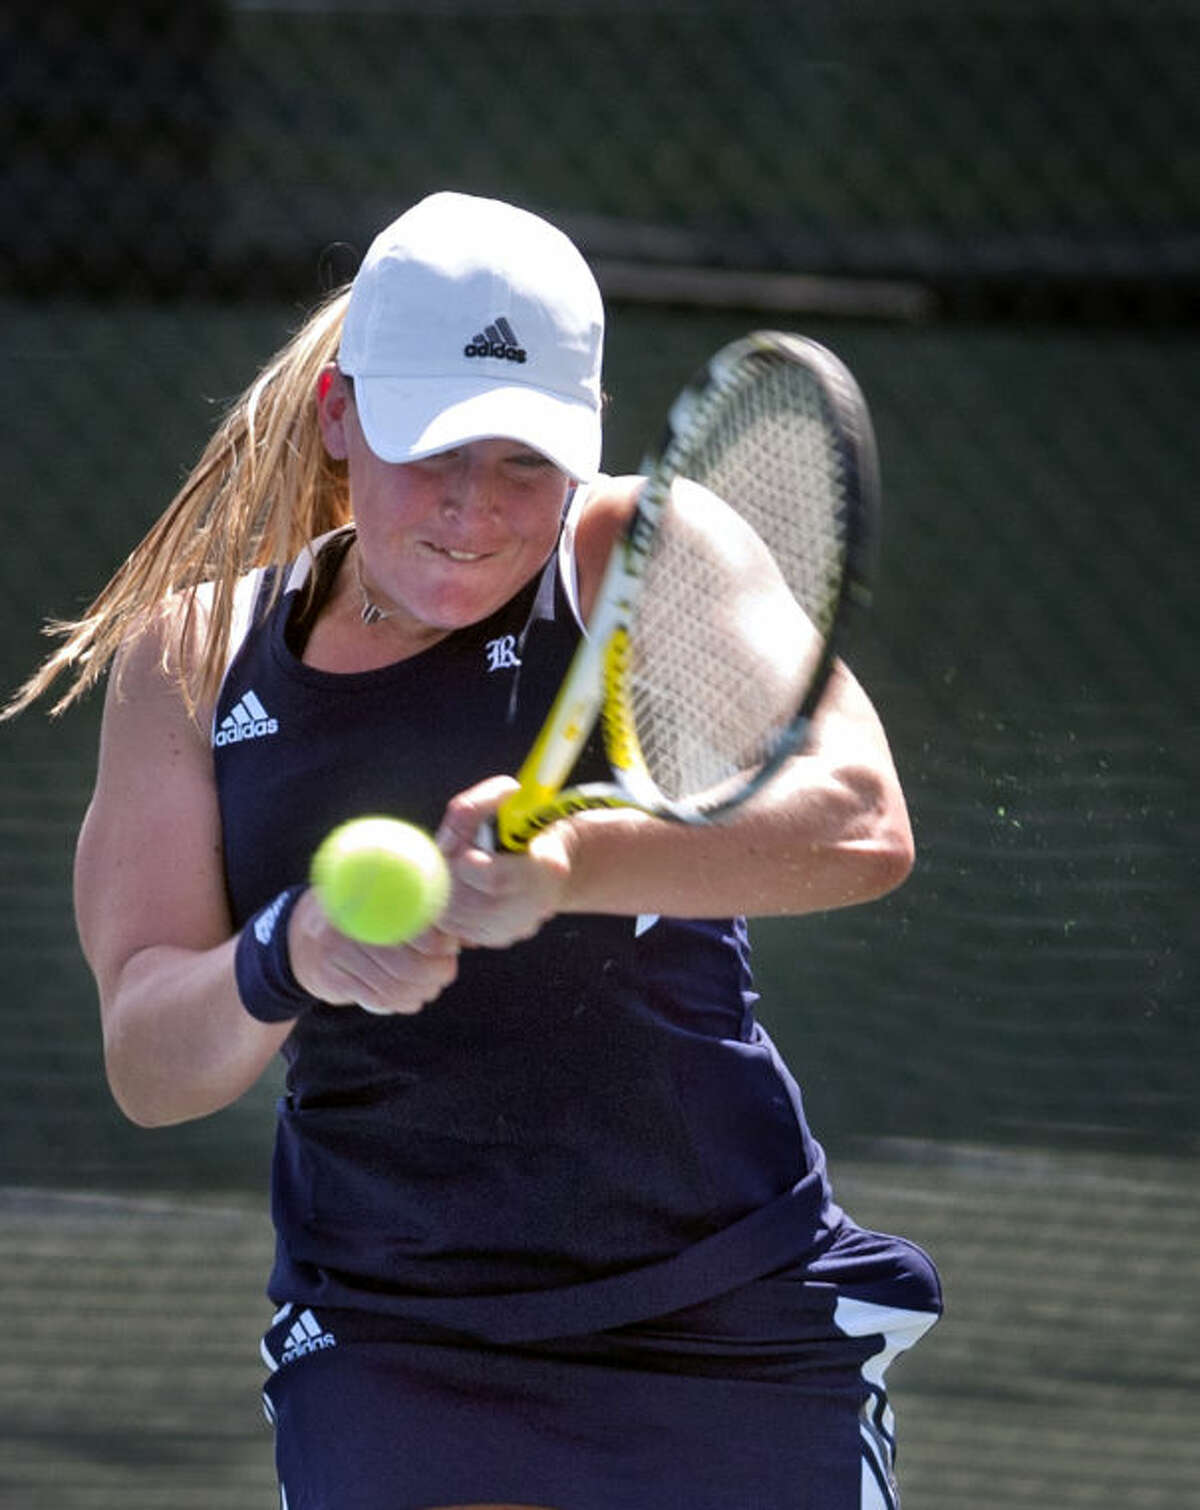 Natalie Beazant of Rice, defending champ and #2 seed, hits during the Racquet Club Collegiate Invitational on Saturday at the Club. James Durbin/Reporter-Telegram